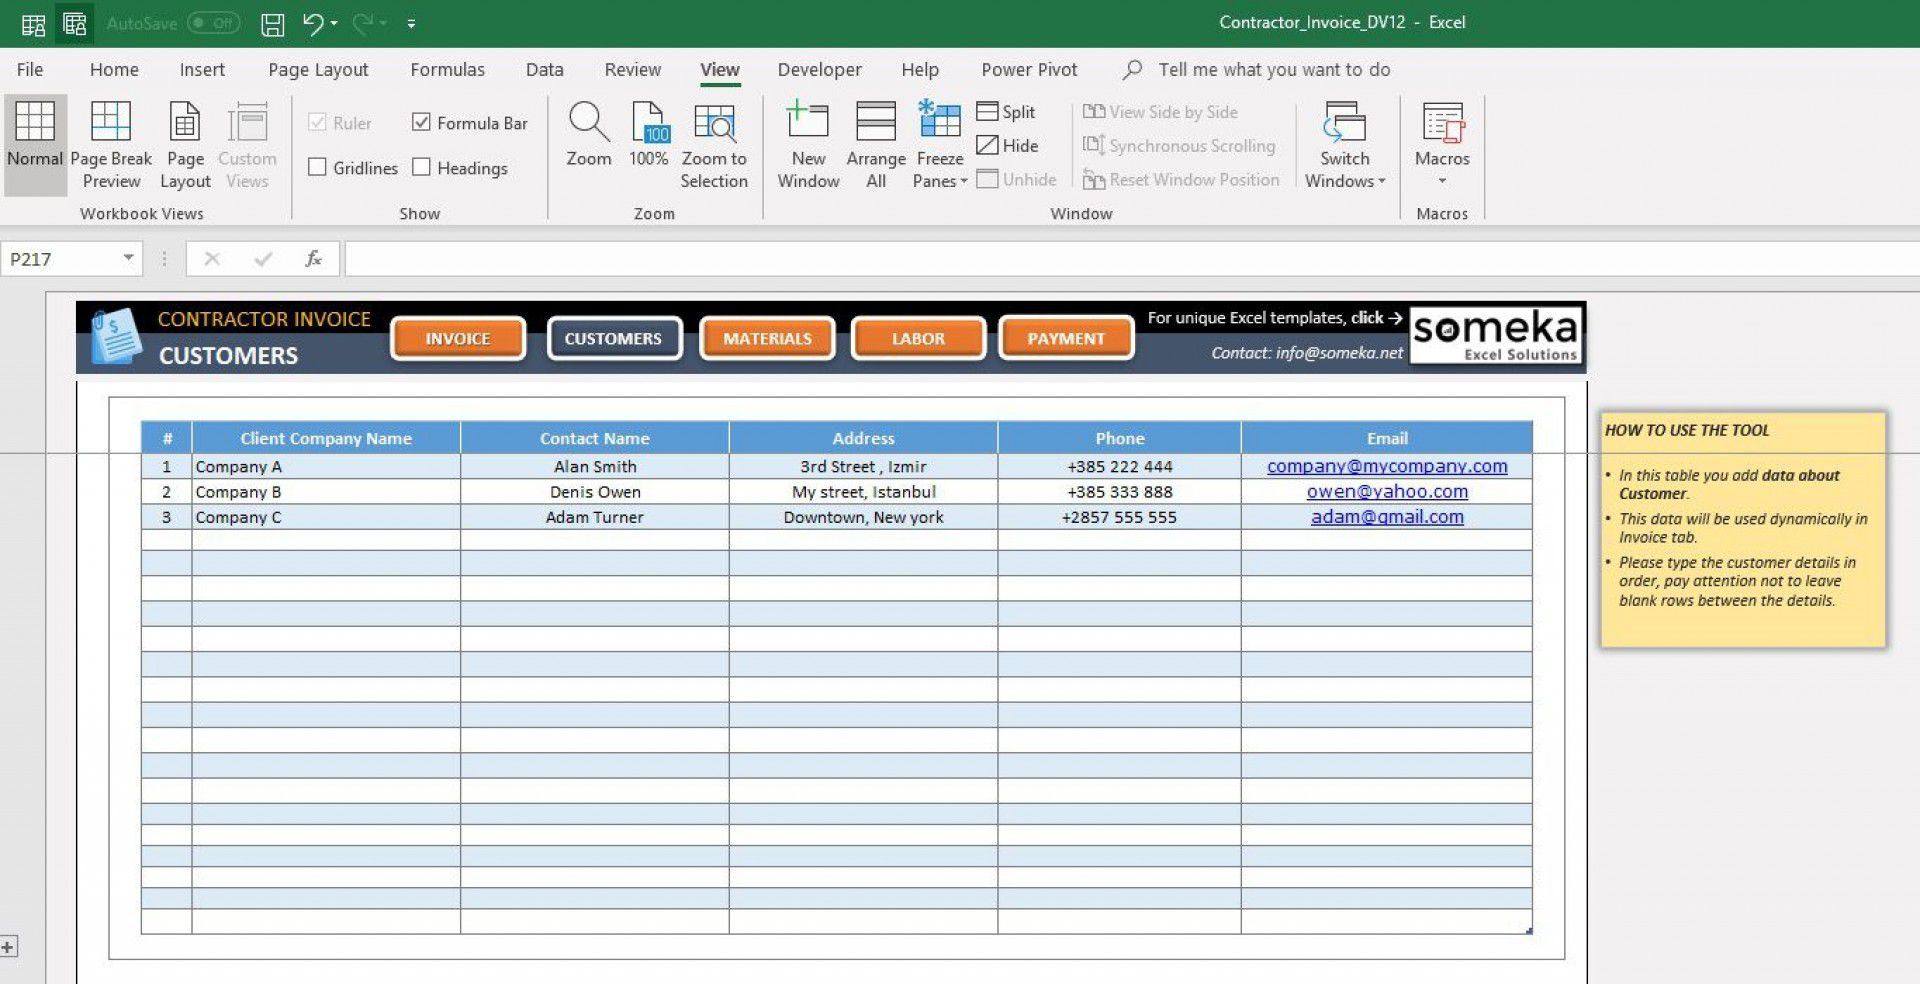 000 Impressive Excel Customer Database Template Sample  Xl Free DownloadFull